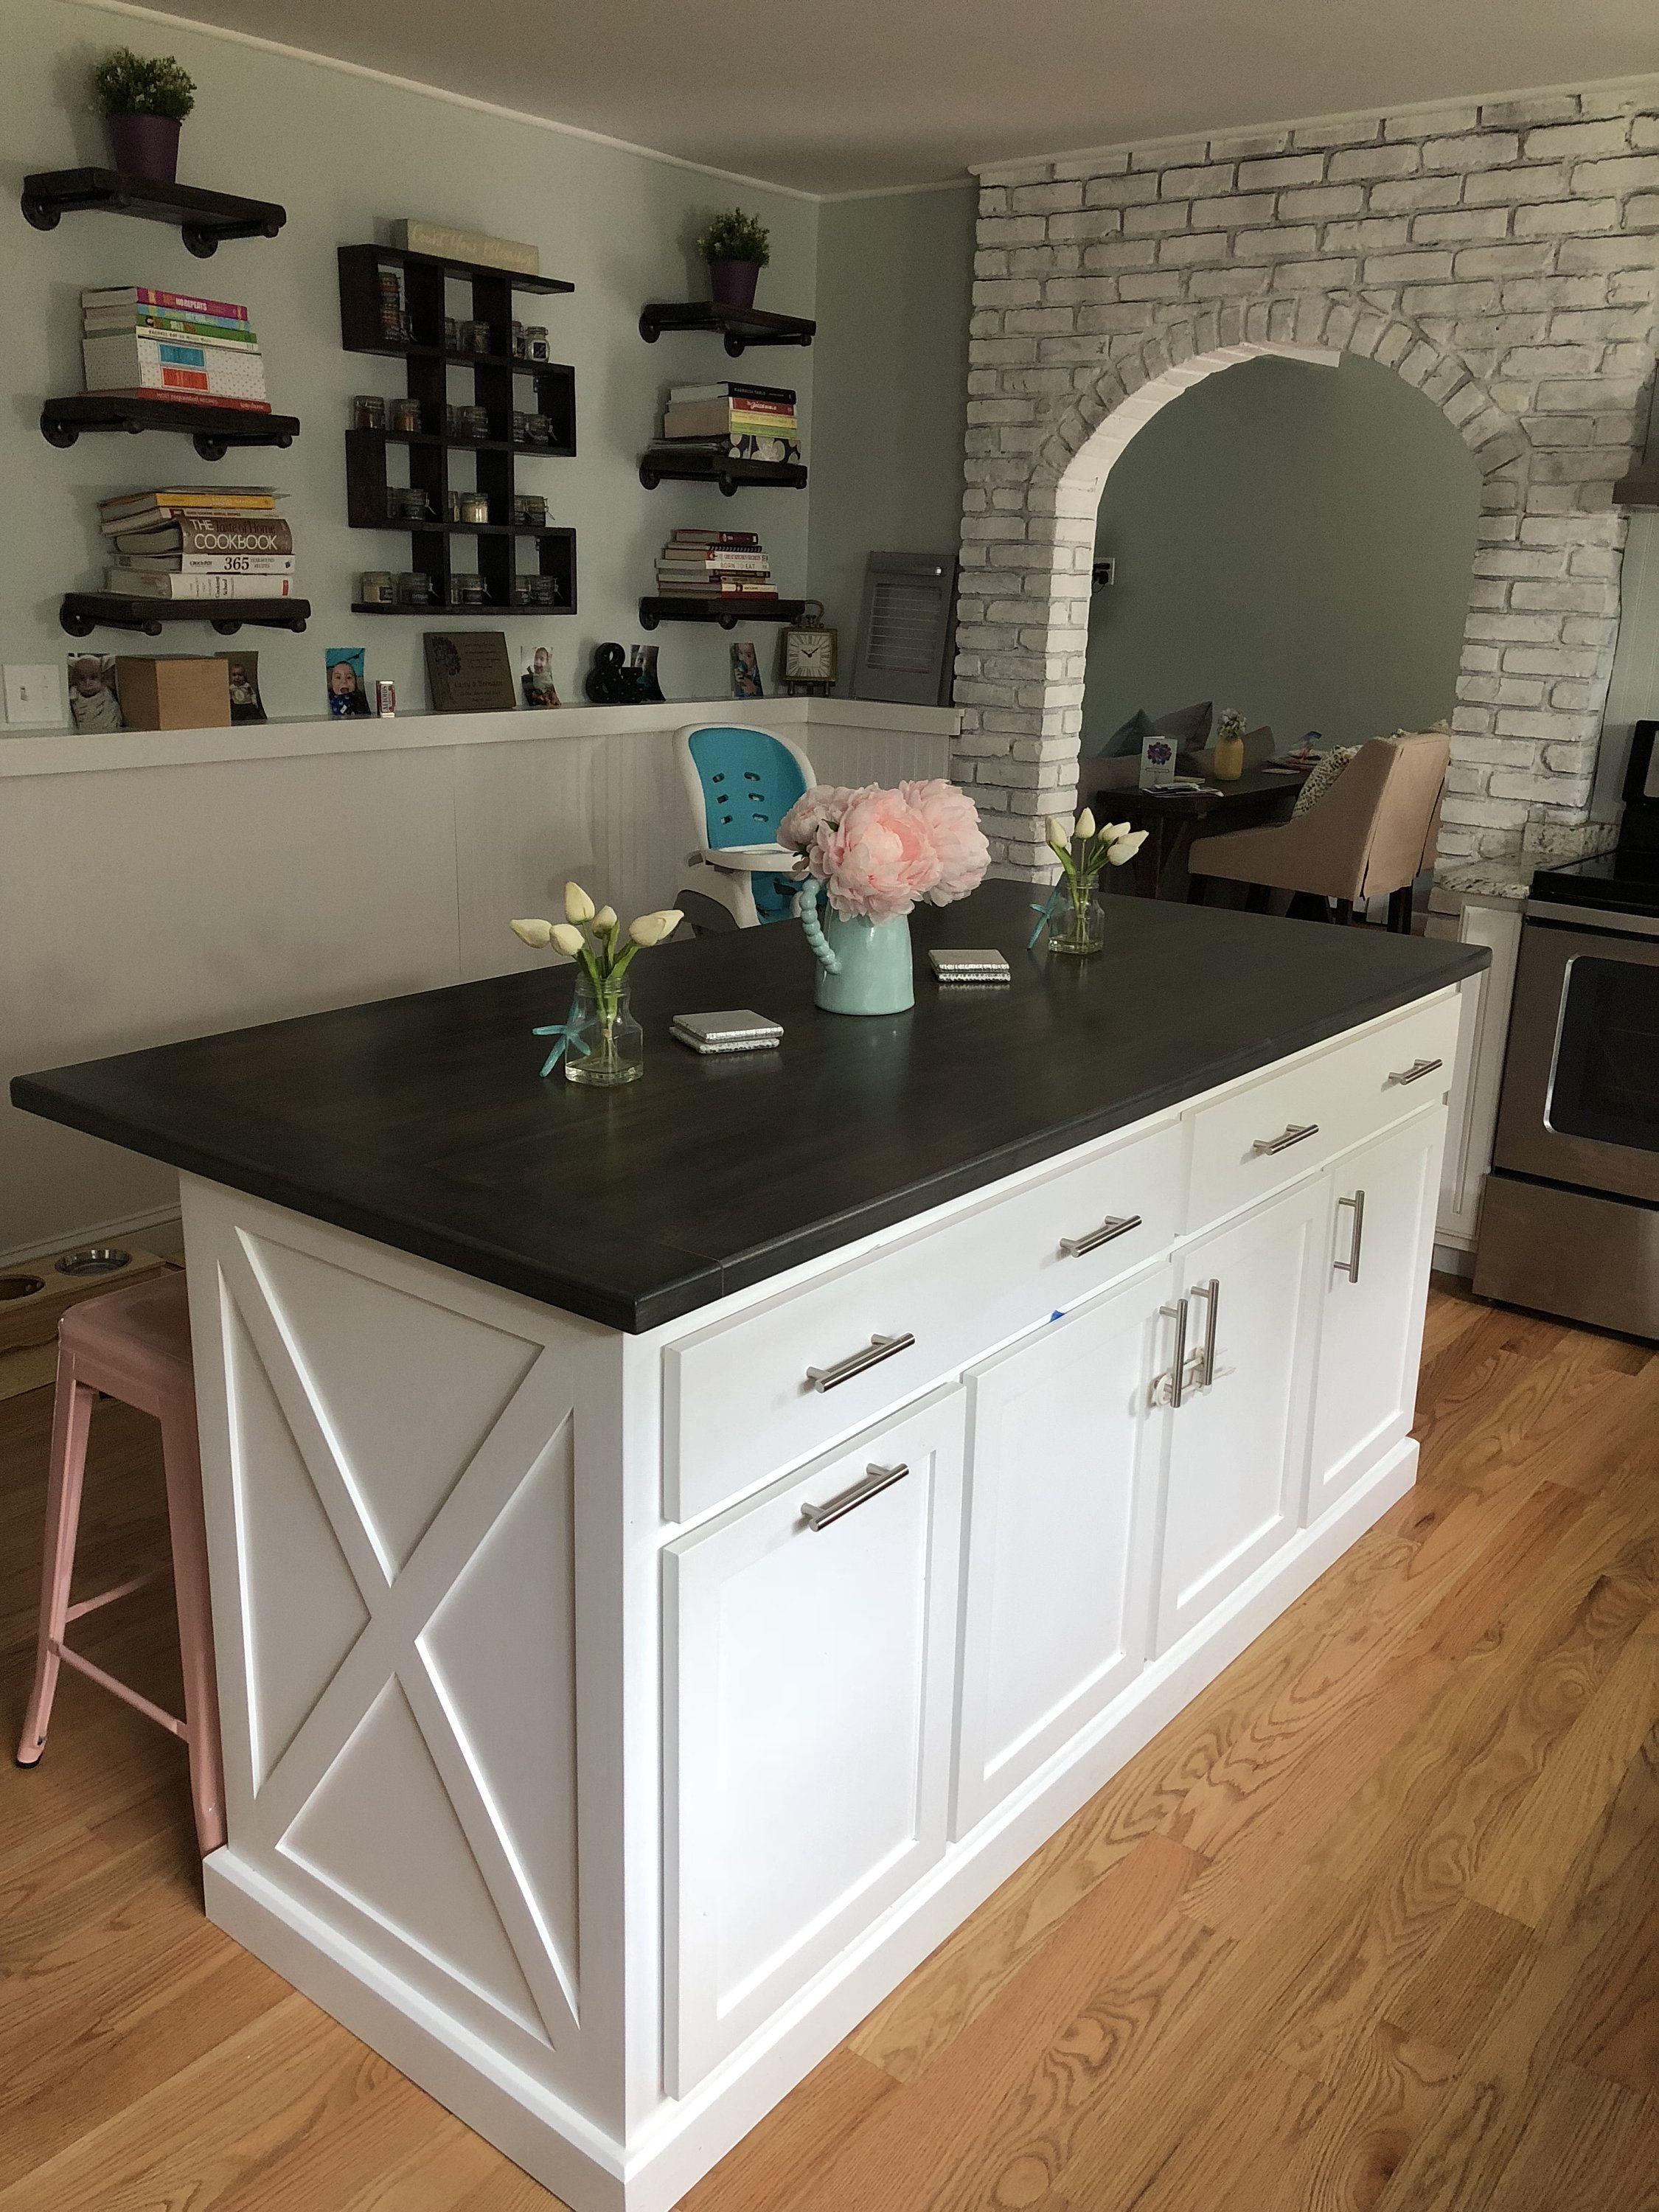 Kitchen Island With Seating Etsy In 2020 Kitchen Island With Seating Custom Kitchen Island Modern Kitchen Island